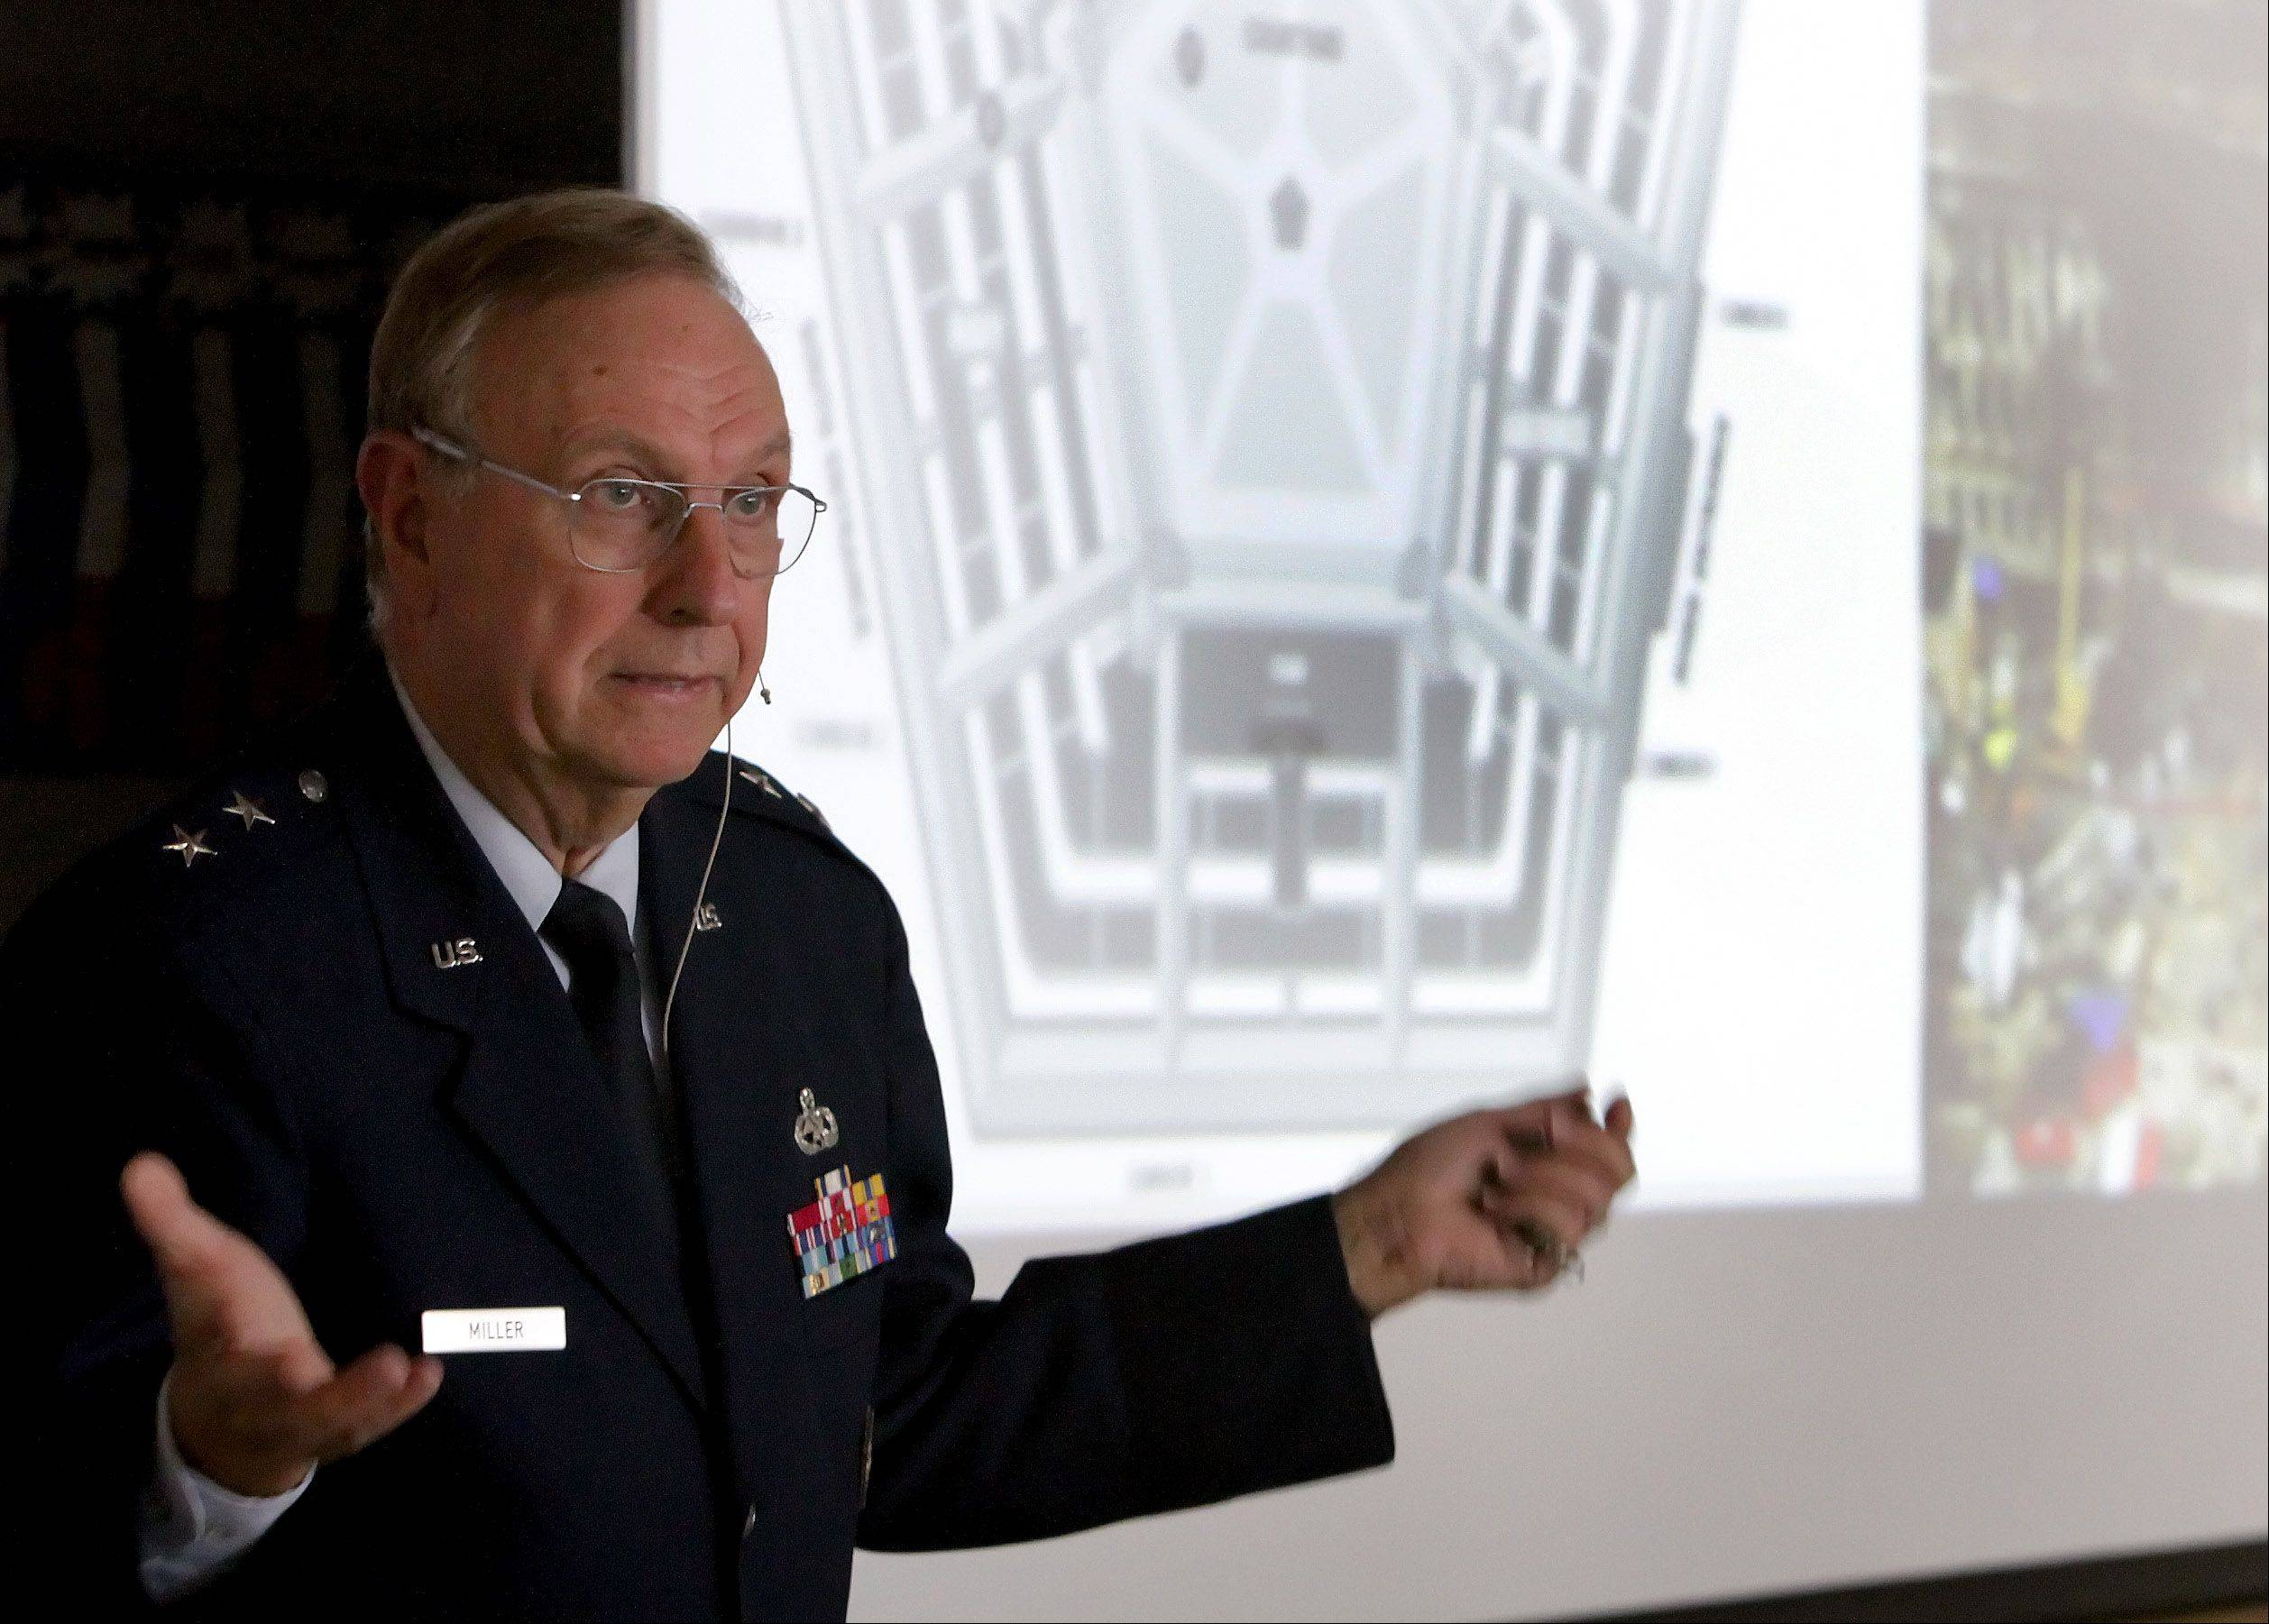 Retired Air Force Maj. Gen. James Miller was scheduled to attend a meeting early on the morning of Sept. 11 in the Pentagon. He was on the opposite side of the facility and unharmed when American Airlines Flight 77 crashed into the building.